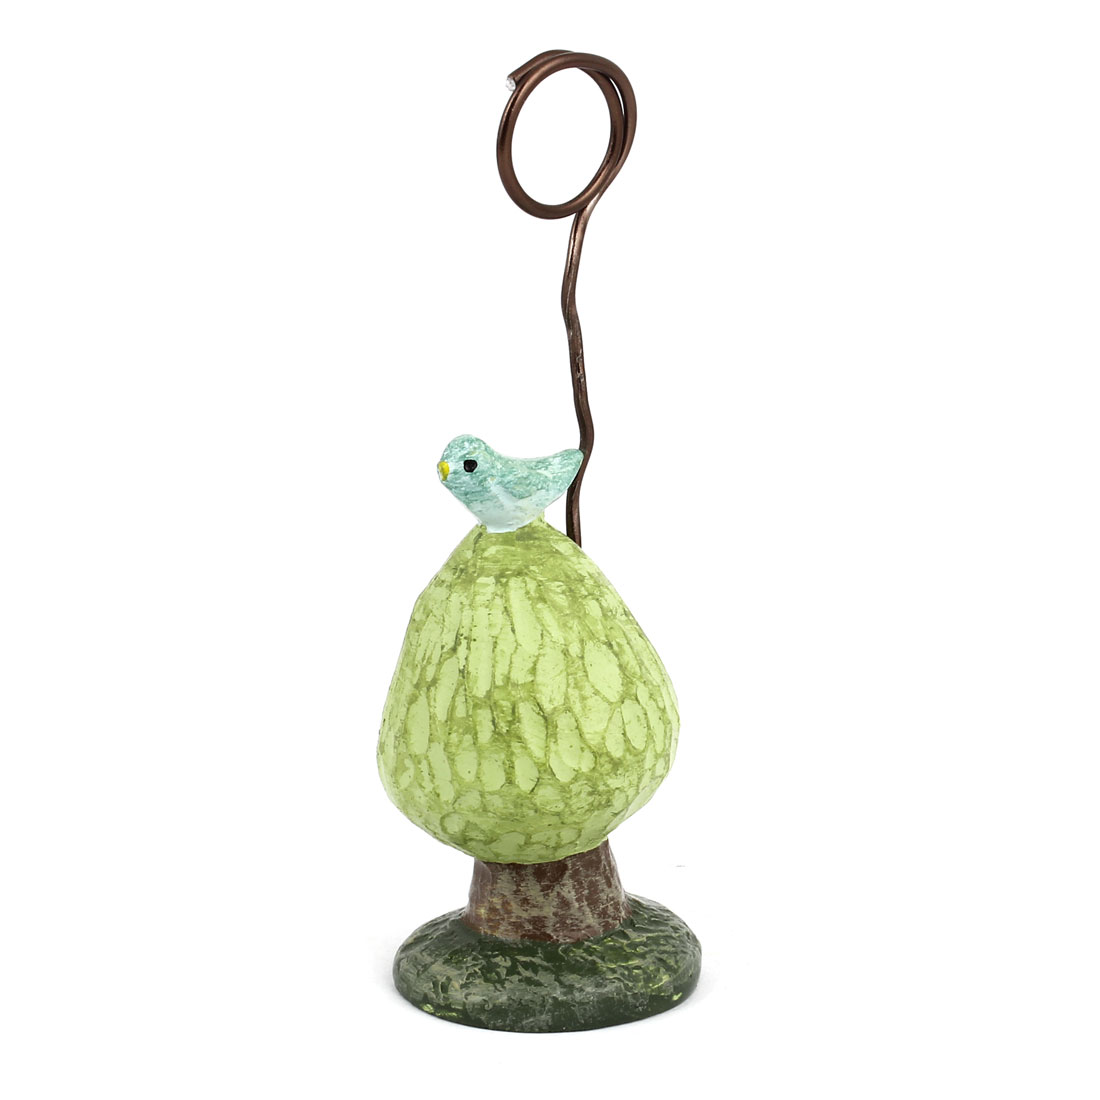 Bird Decor Tree Shaped Card Holder Memo Photo Display Clip Clamp Green